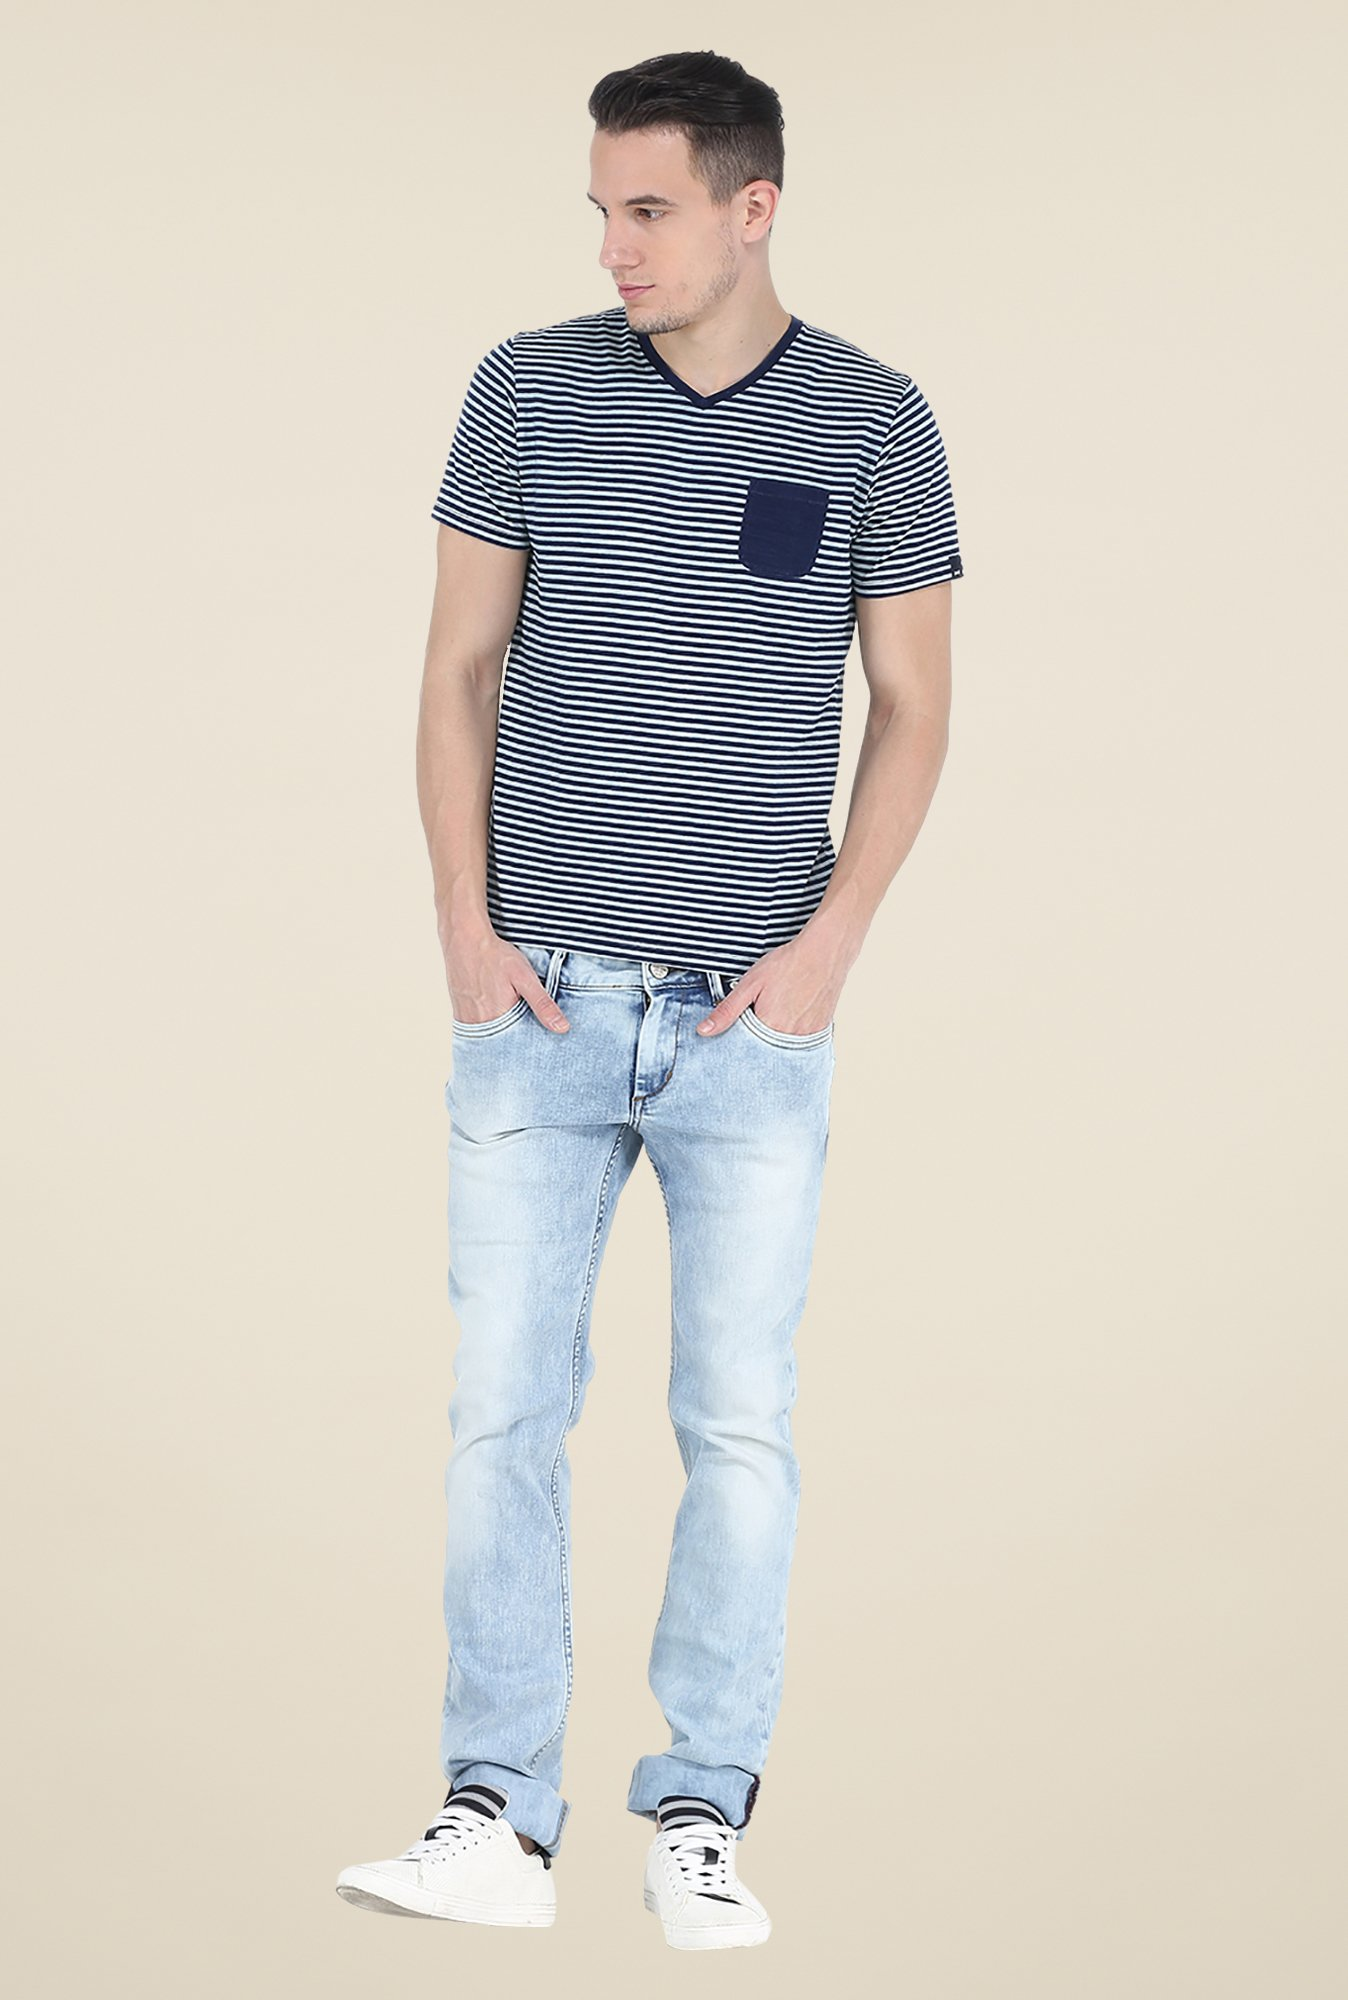 Basics Blue Striped T Shirt